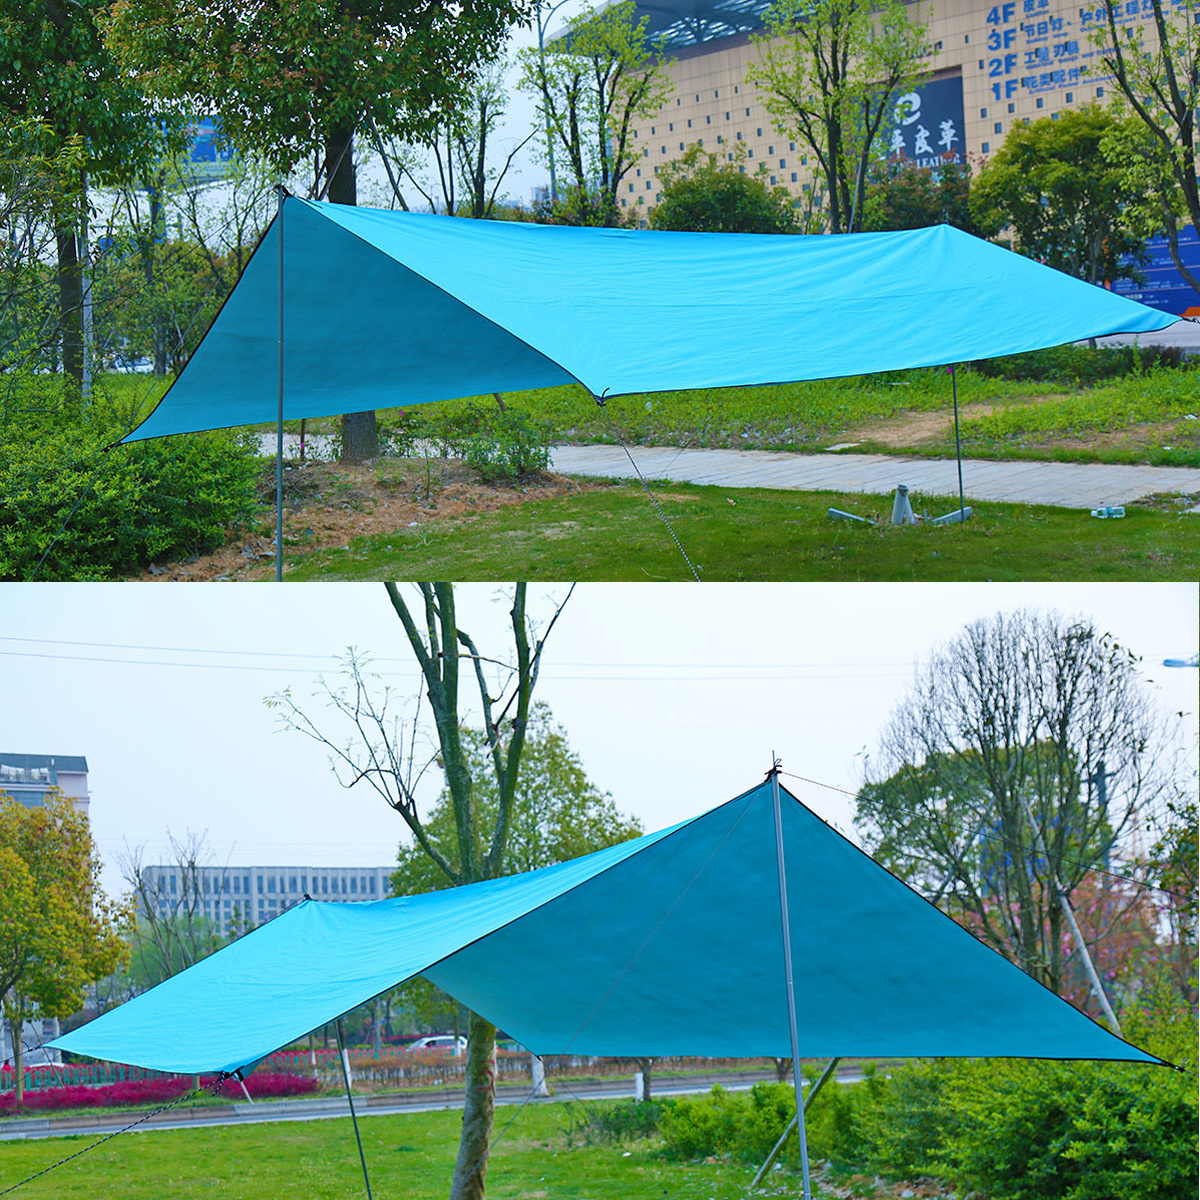 waterproof sun shade sail tent for canopy hammock outdoor camping shelter 10 10 39 ebay. Black Bedroom Furniture Sets. Home Design Ideas